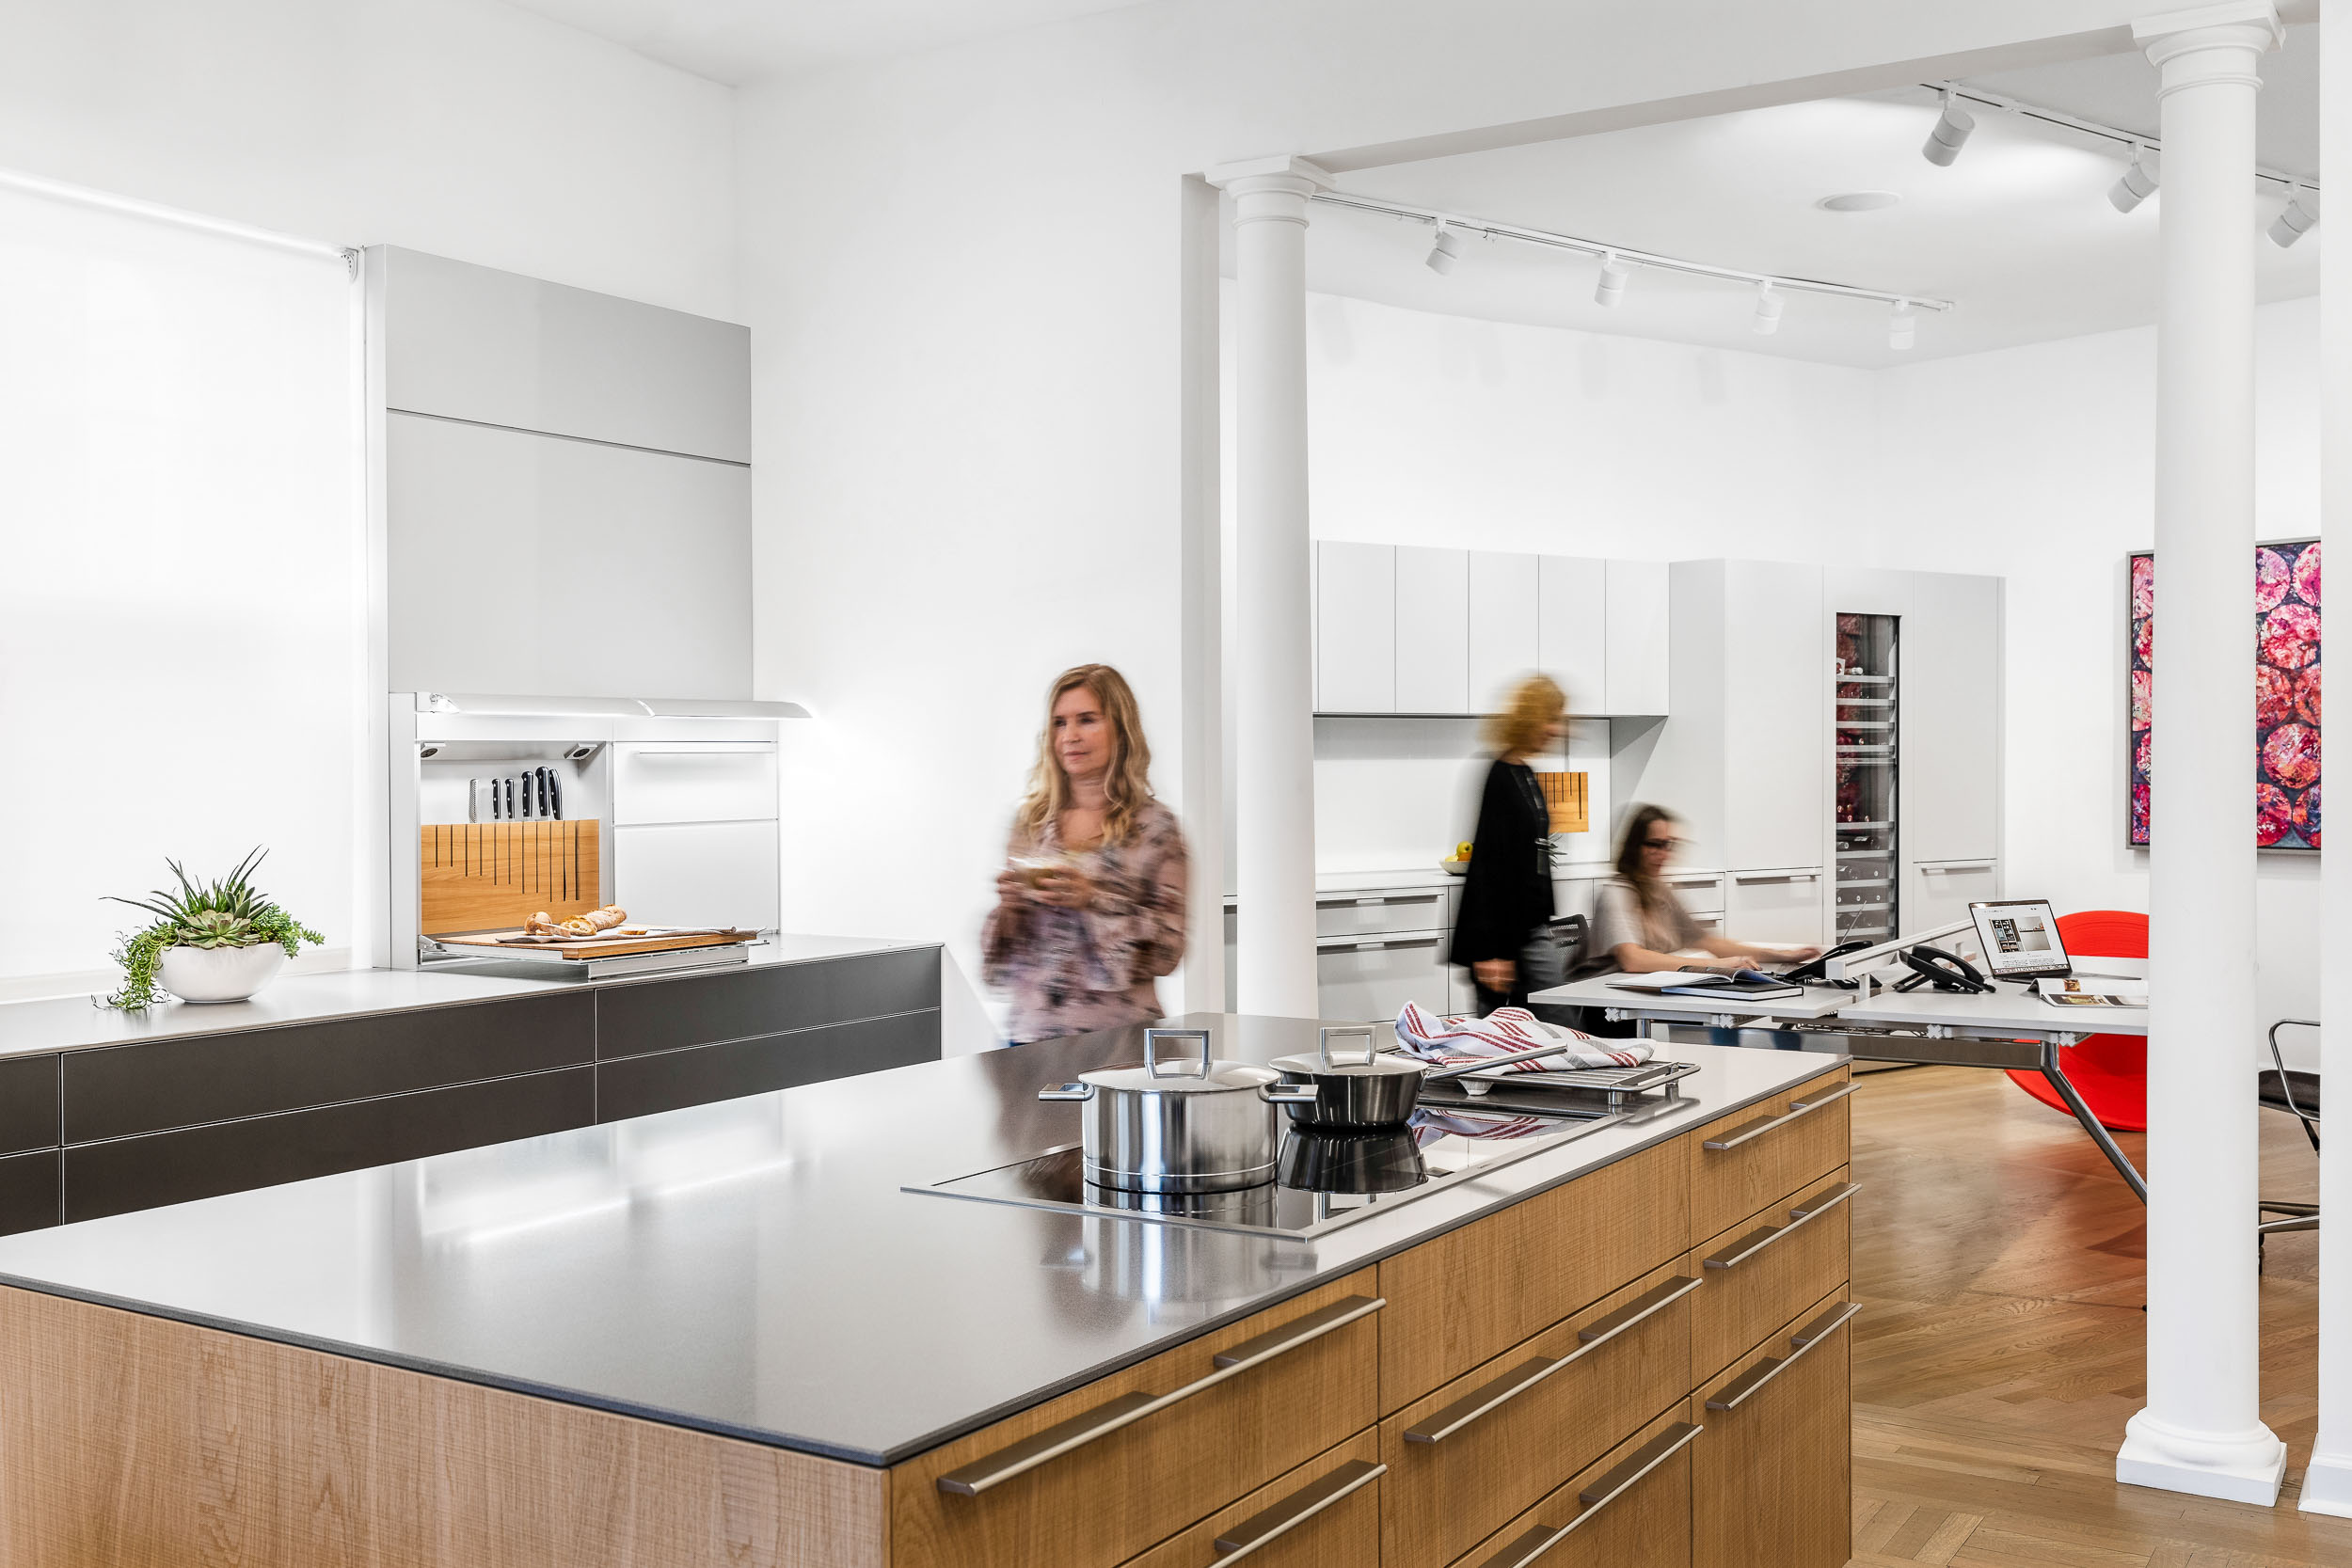 Commercial architectural photography of for a Luxury Kitchen Showroom in Greenwich, Connecticut.